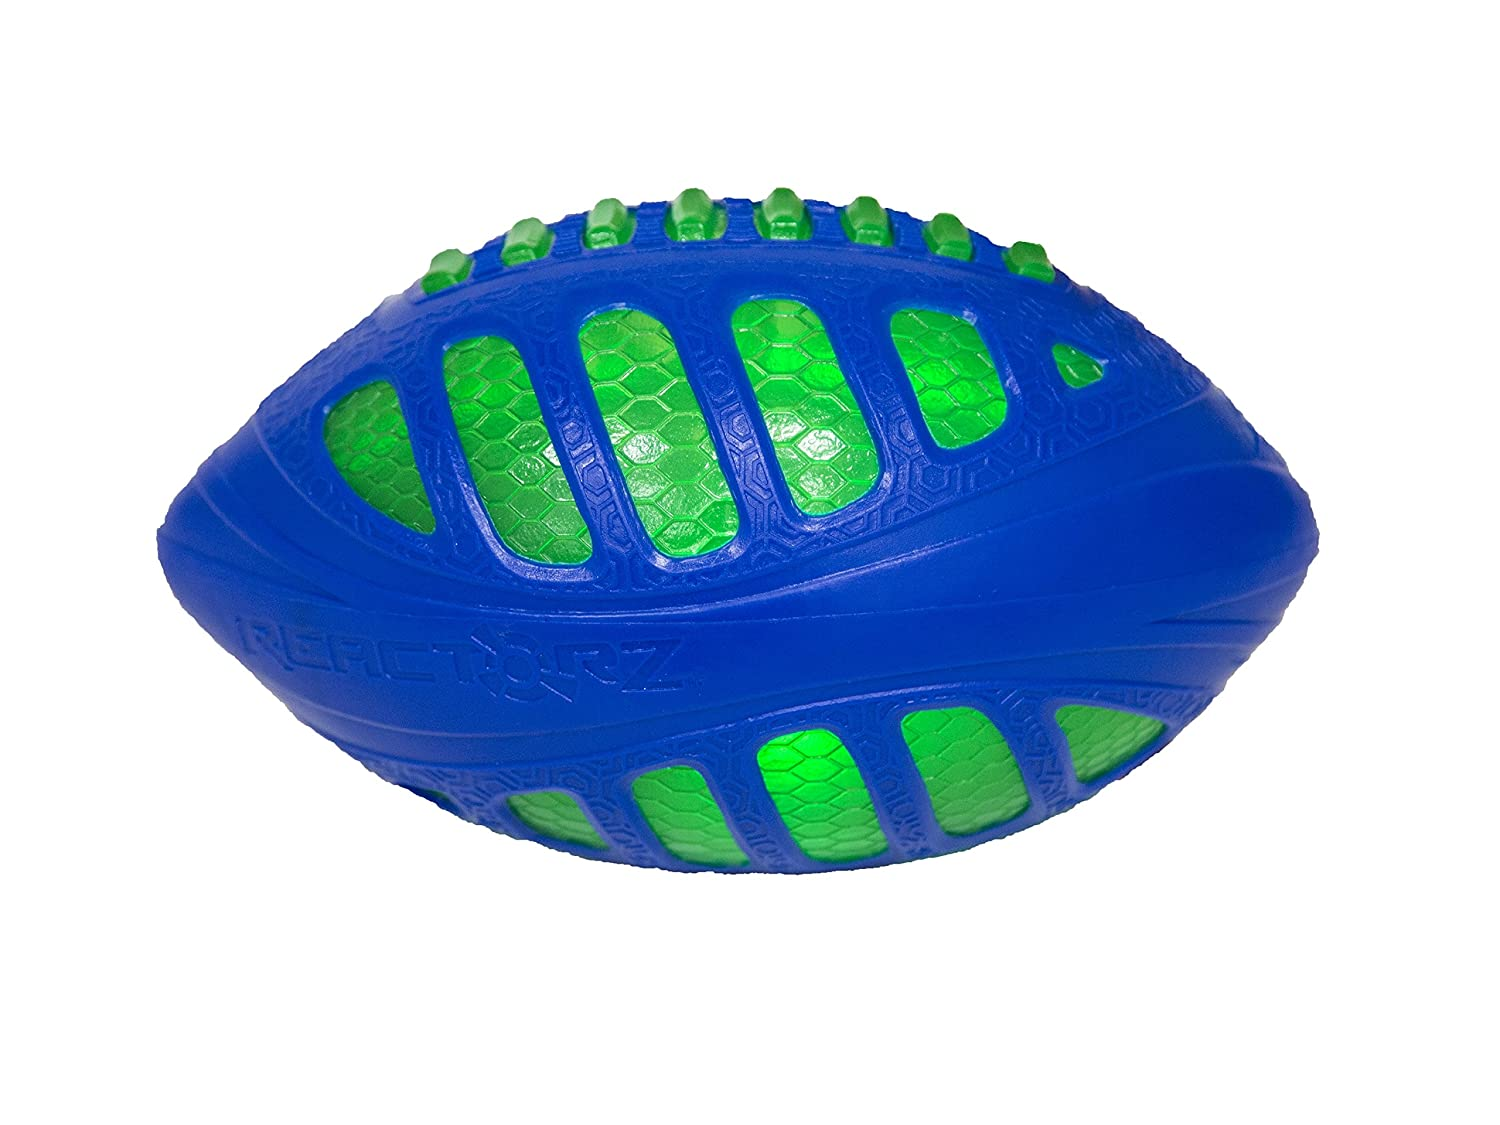 Reactorz Light-Up Football, Blue by COOP